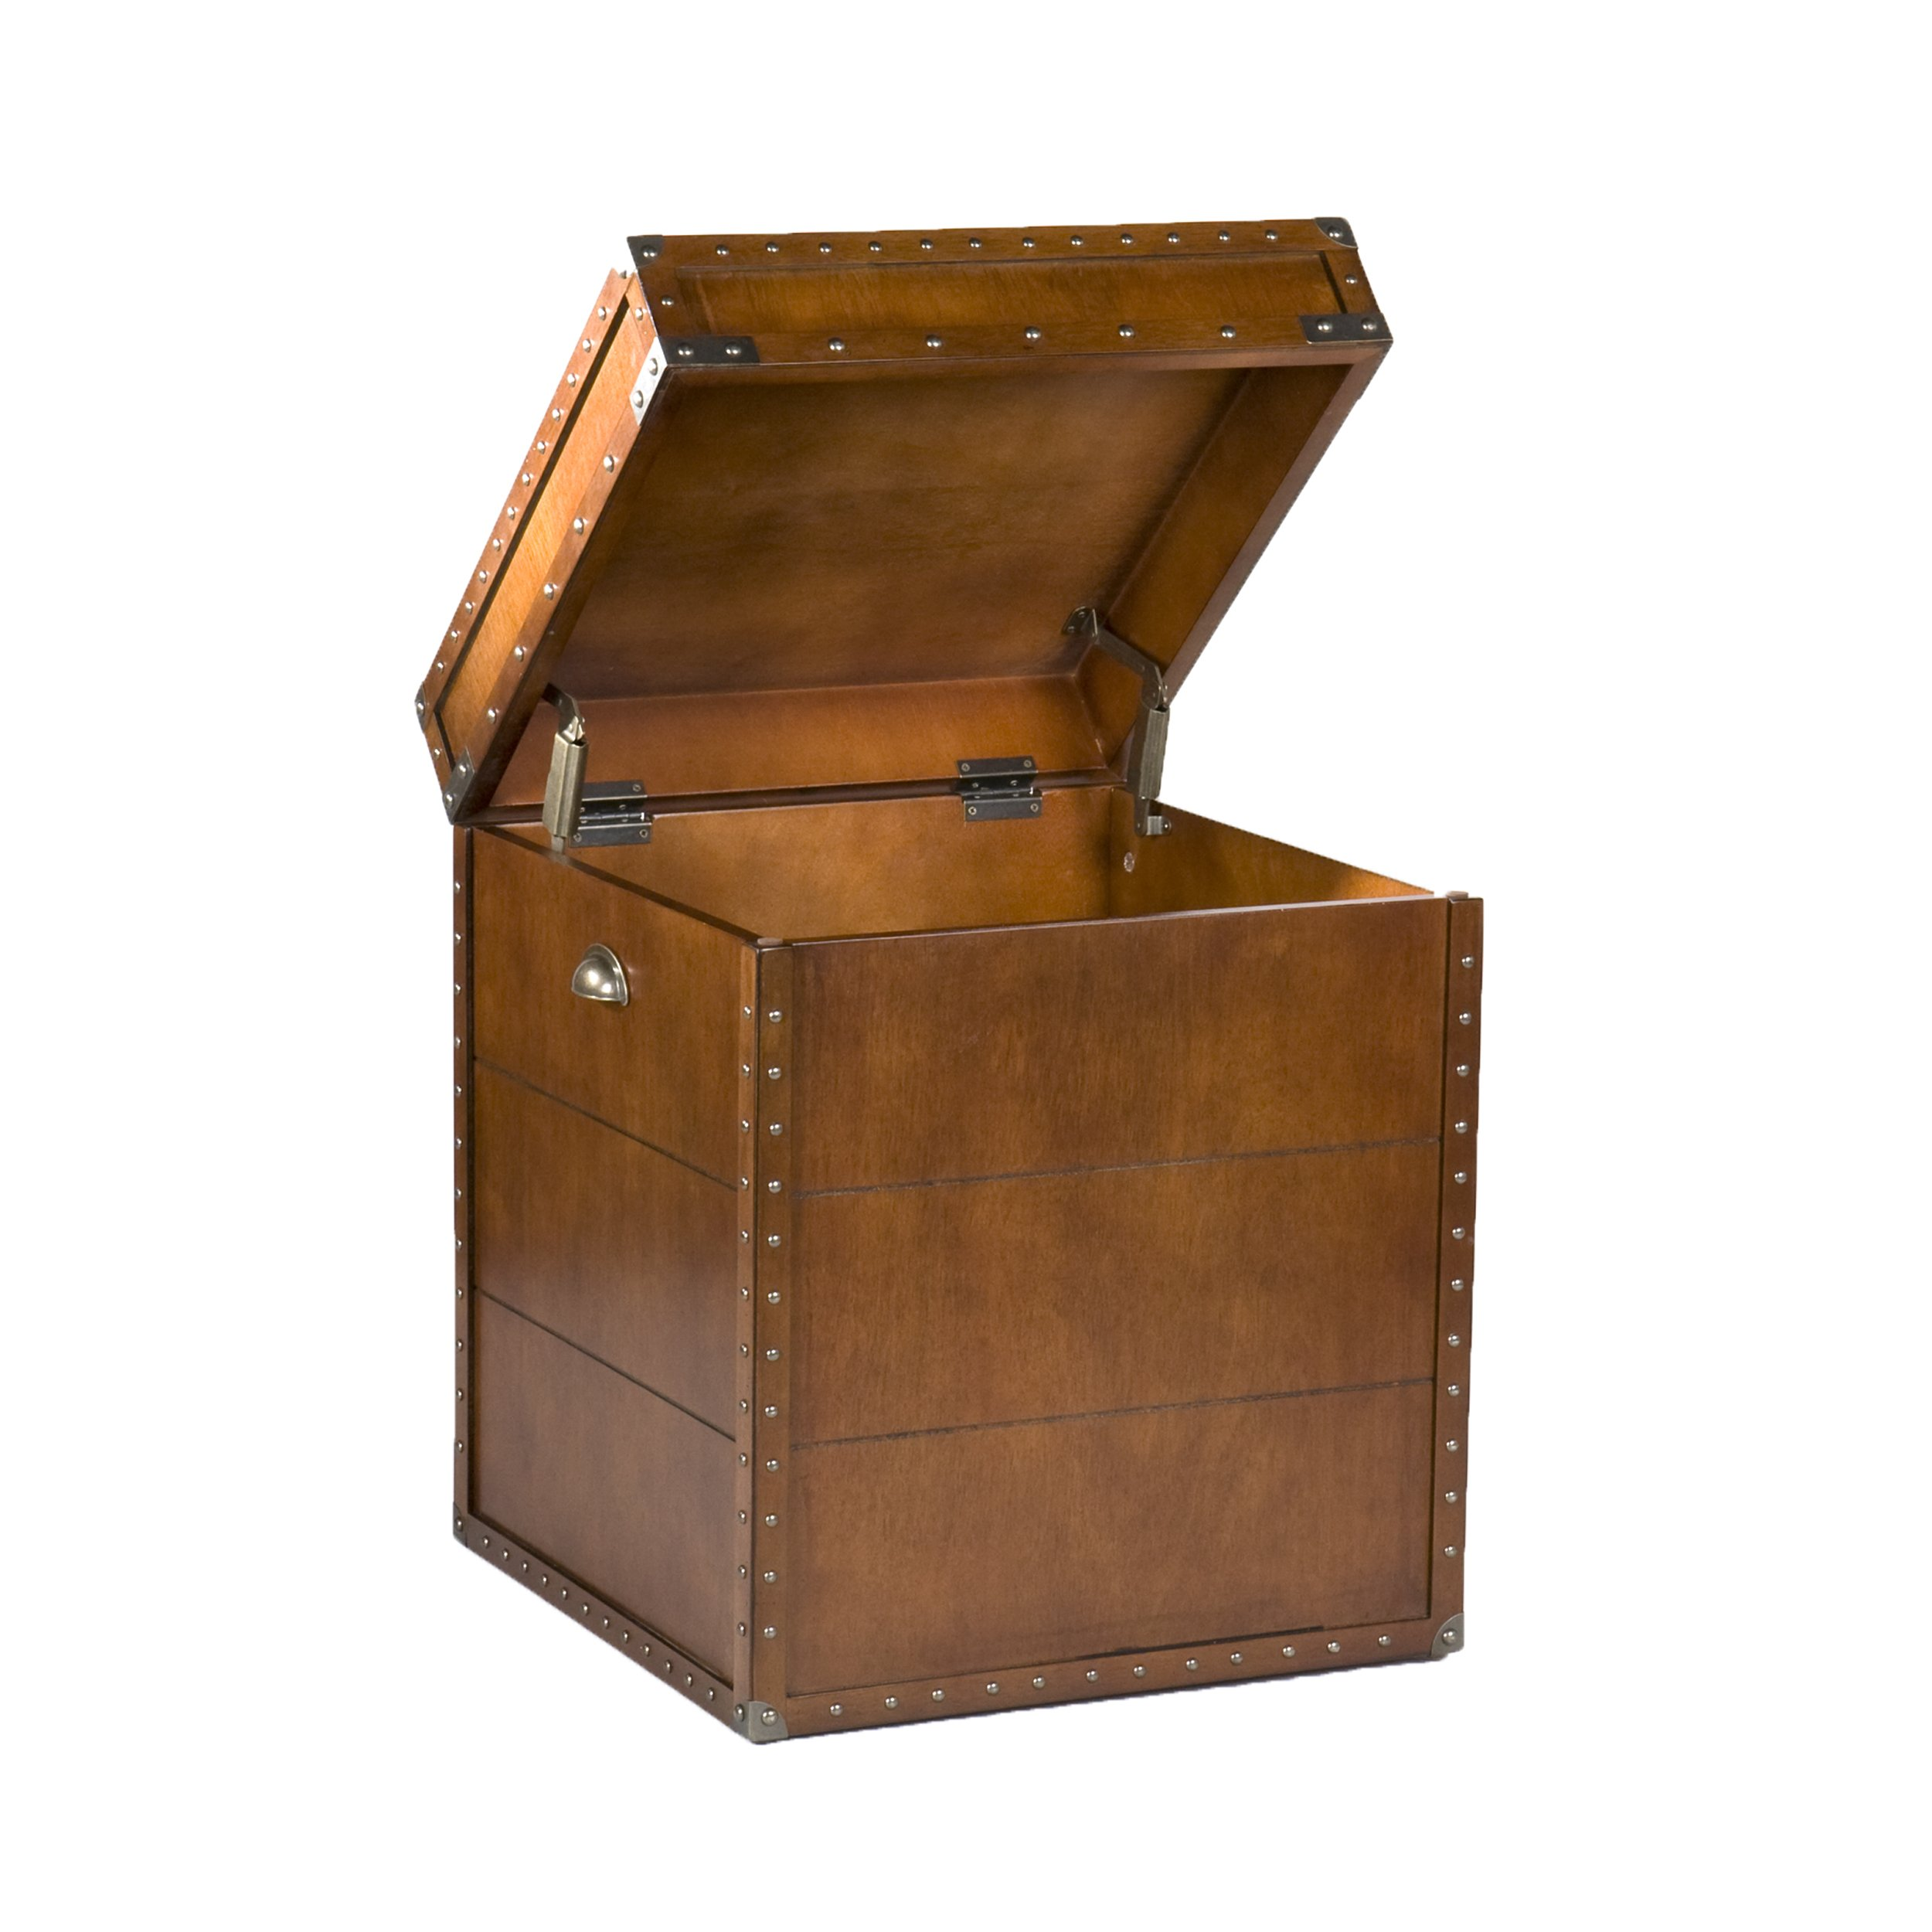 Southern Enterprises Steamer Trunk End Table - Rustic Nailhead Trim - Refinded Industrial Style by Southern Enterprises (Image #6)